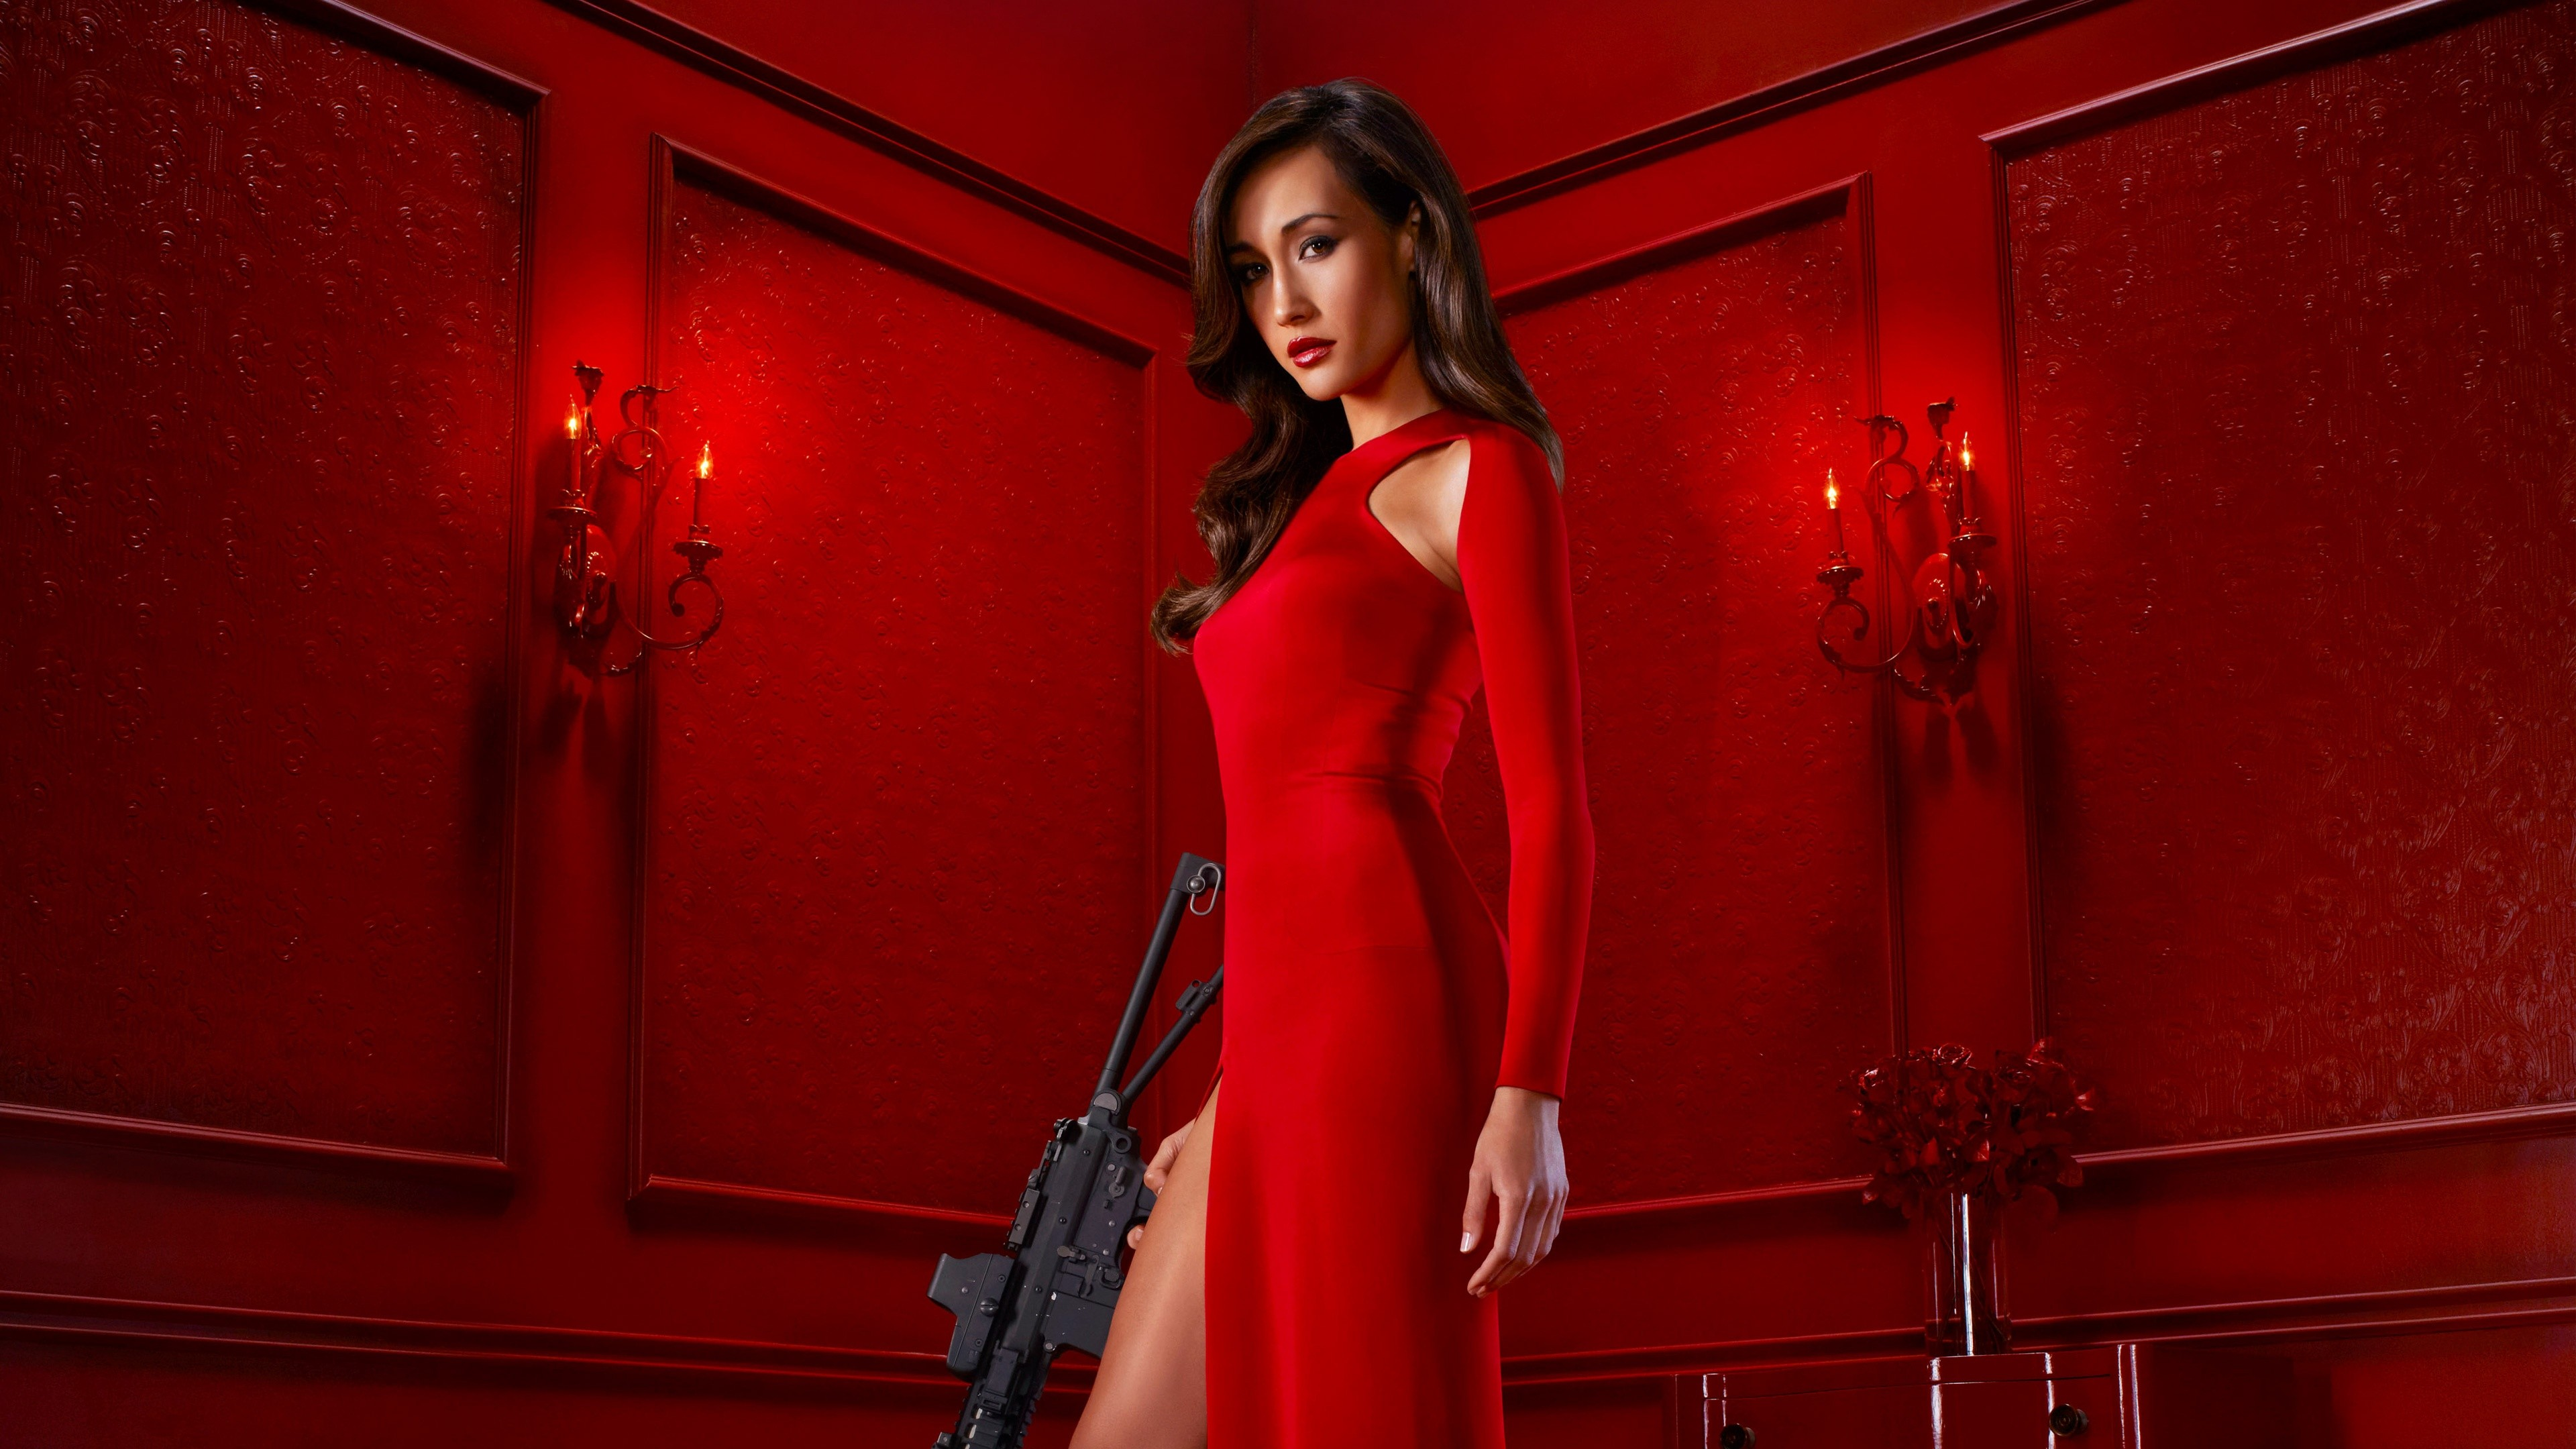 BMW Of Murray >> Wallpaper MAGGIE Q, red dress, l ook, Most popular celebs ...